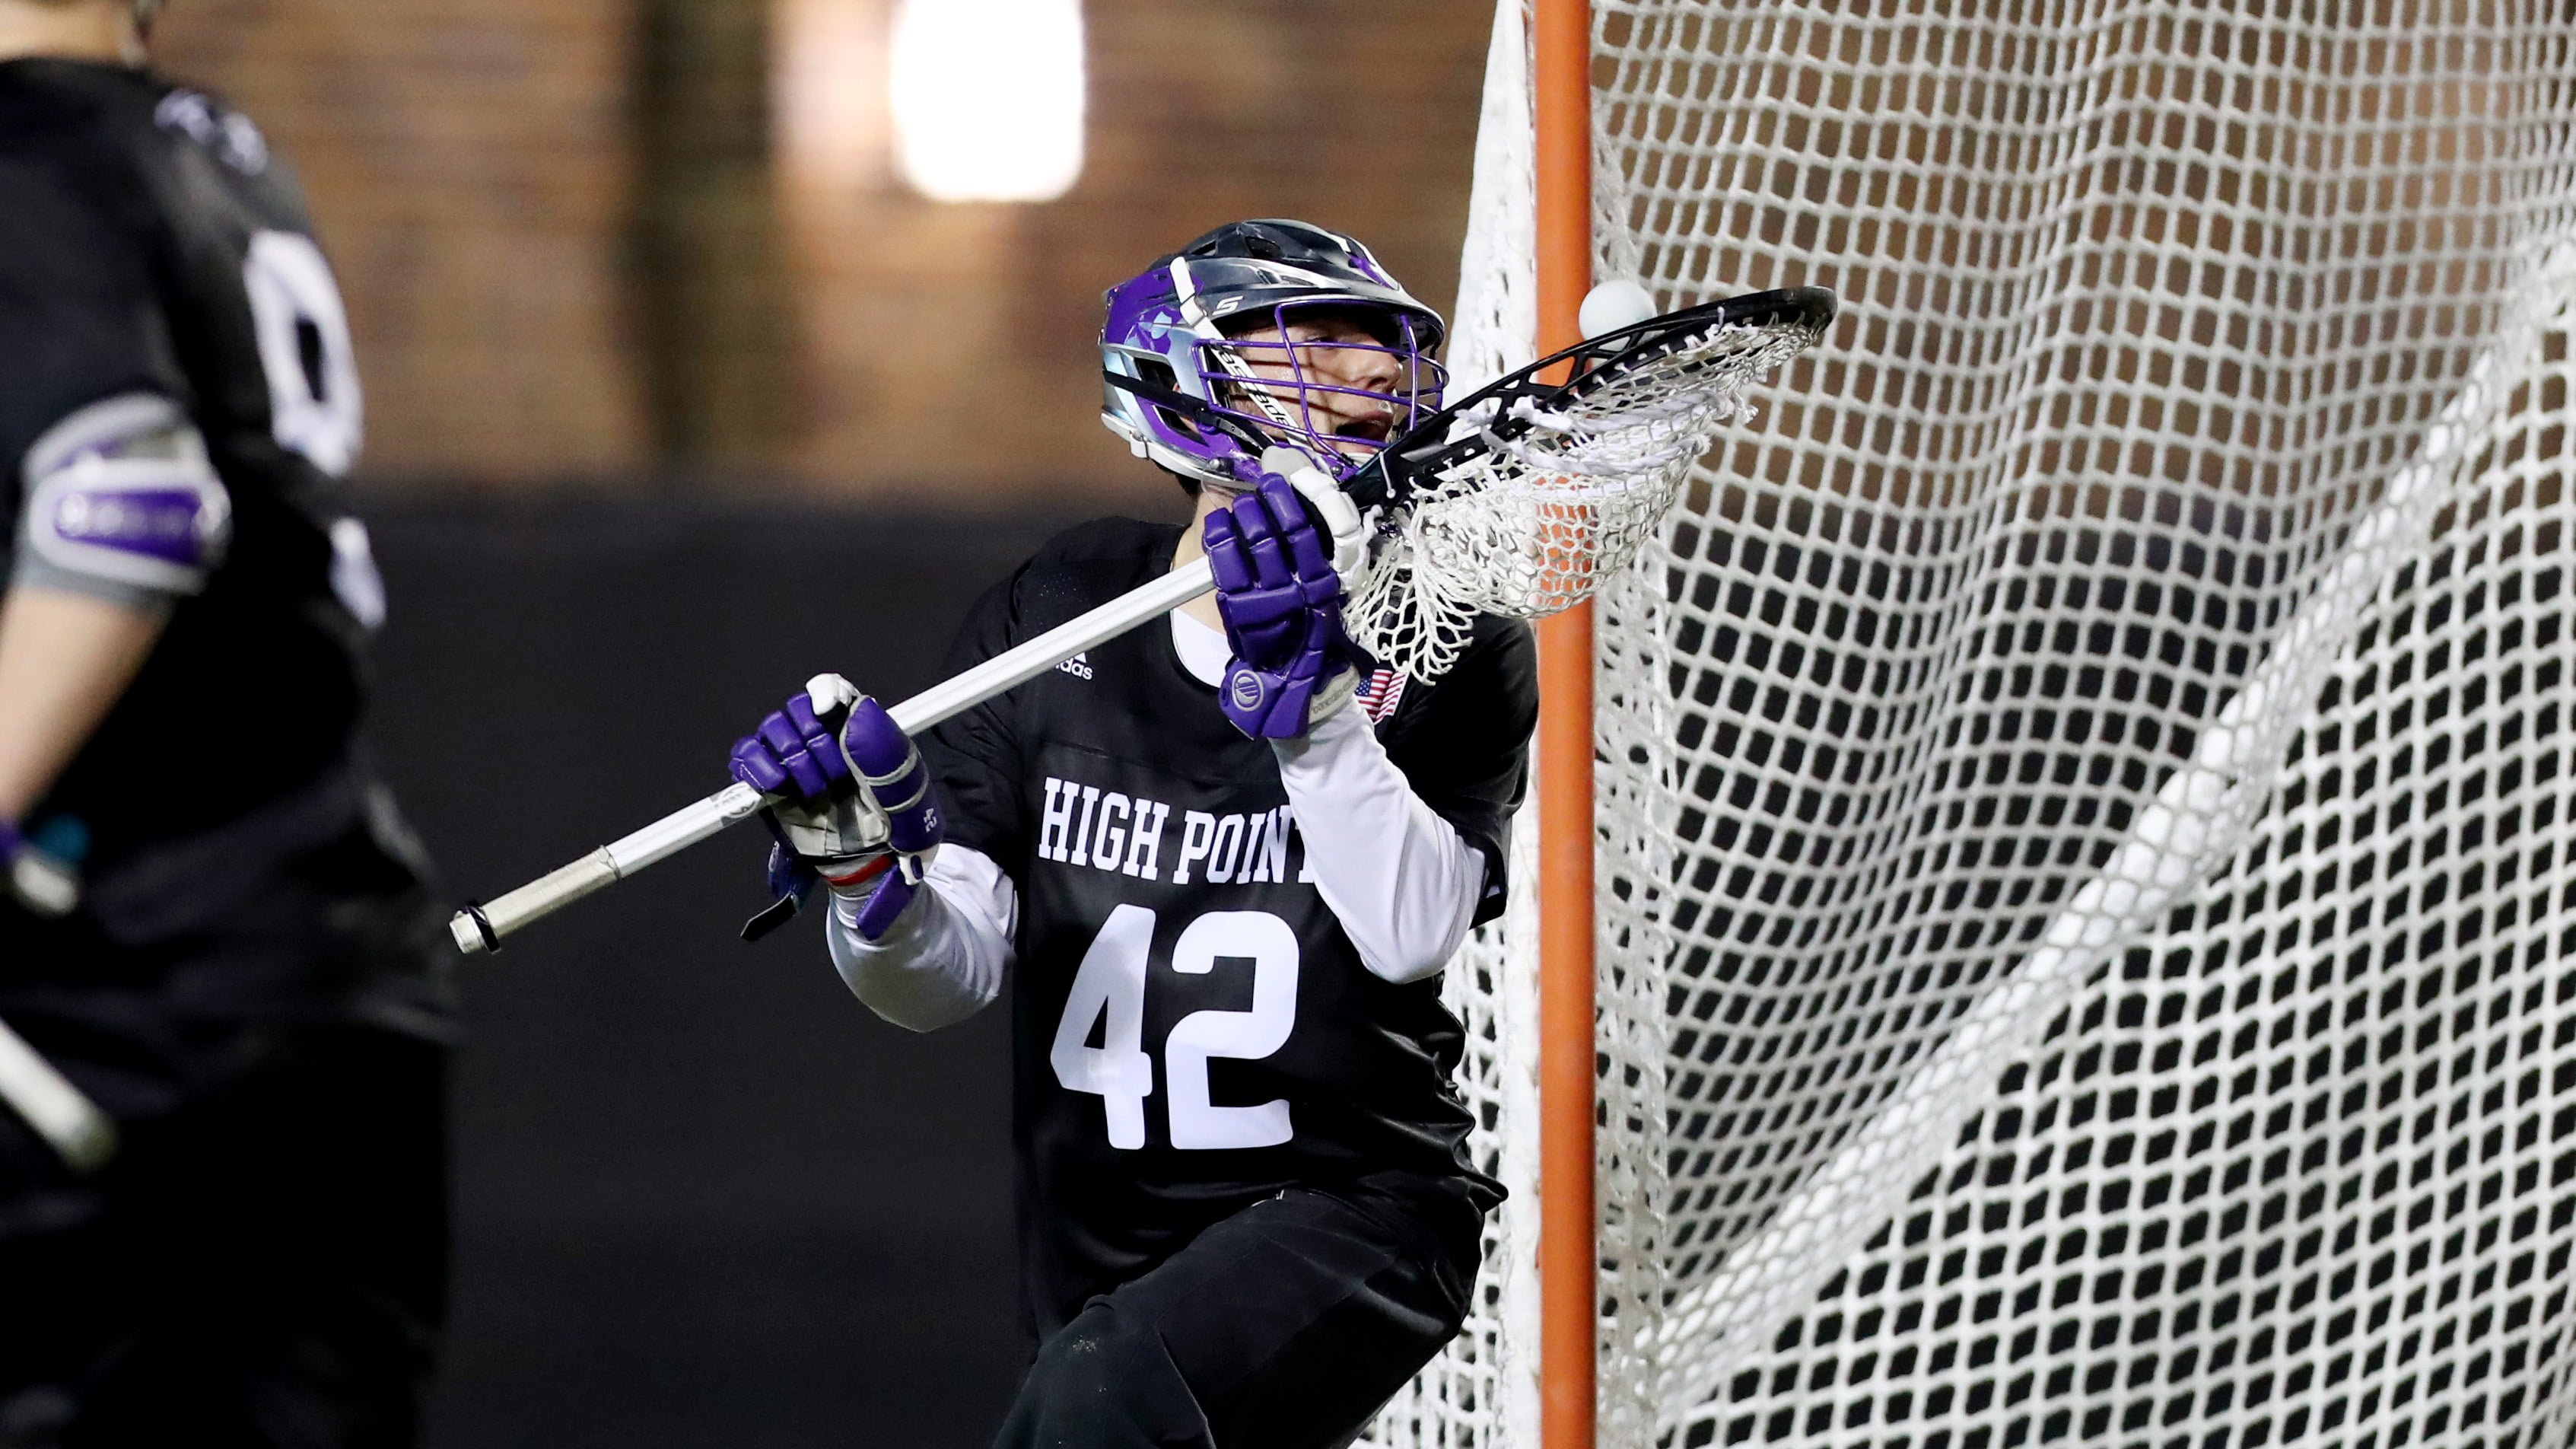 High Point Lacrosse >> High Point Snubbed For Lacrosse Ncaas The North State Journal